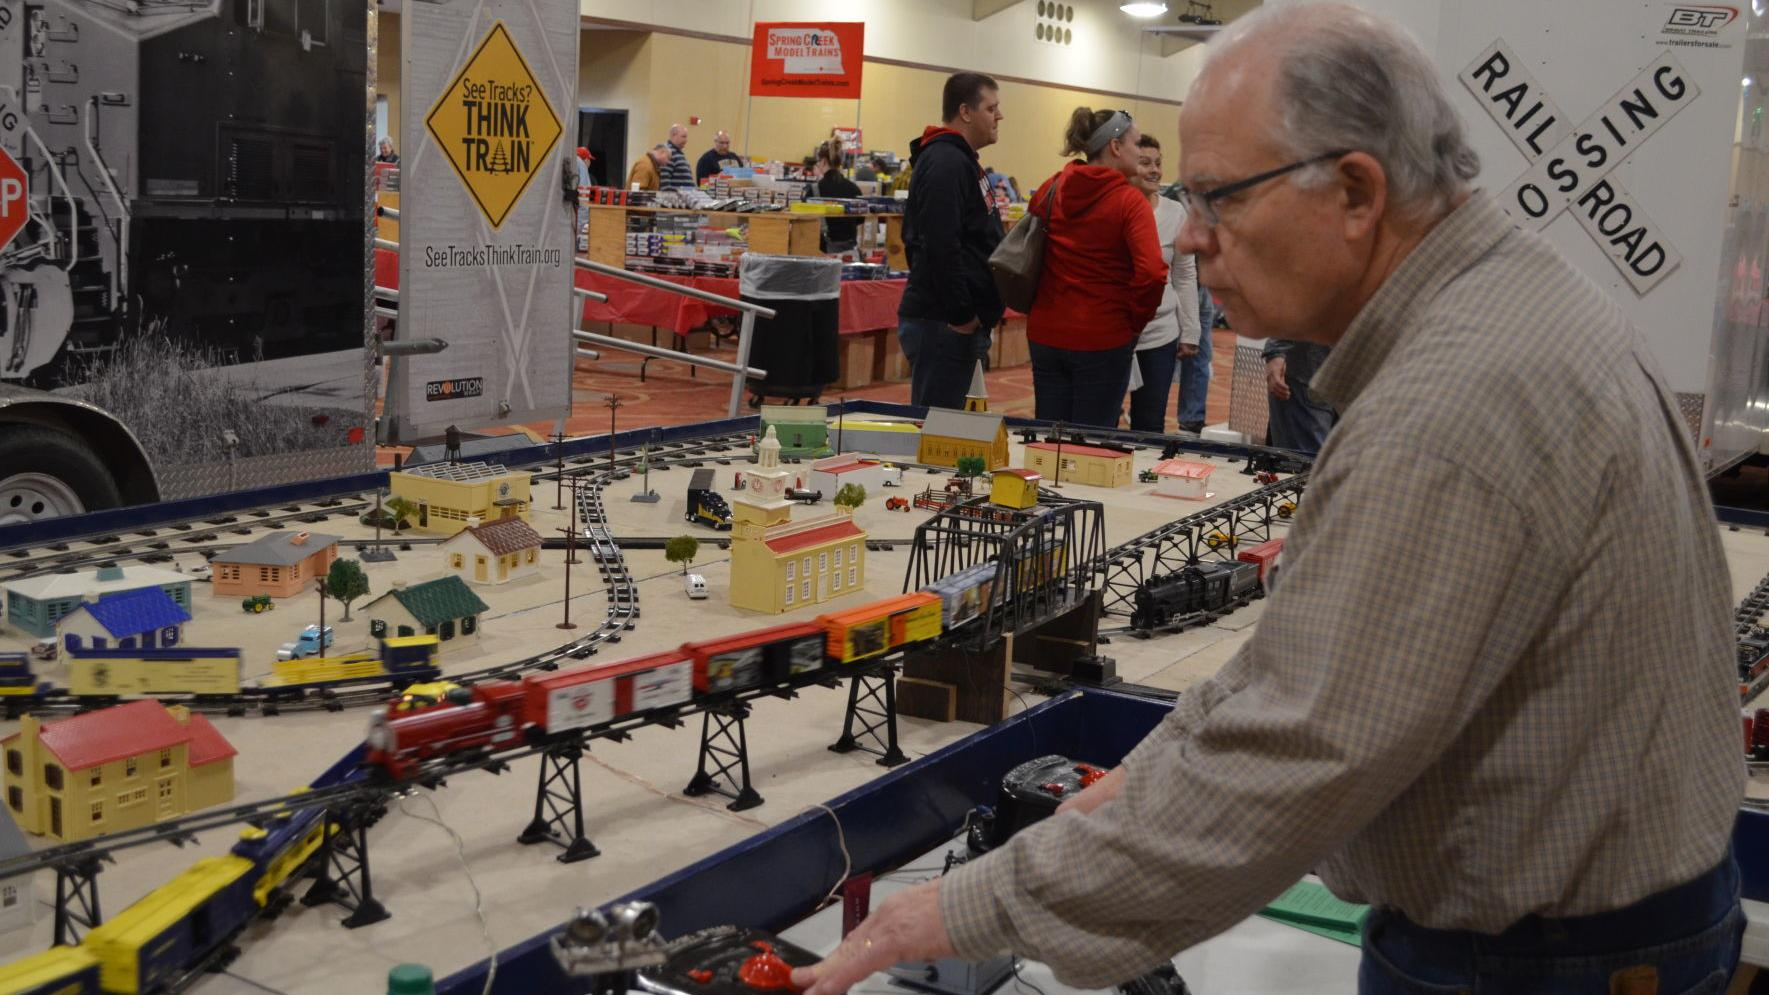 Train Show enthusiast talks about his passion for model trains